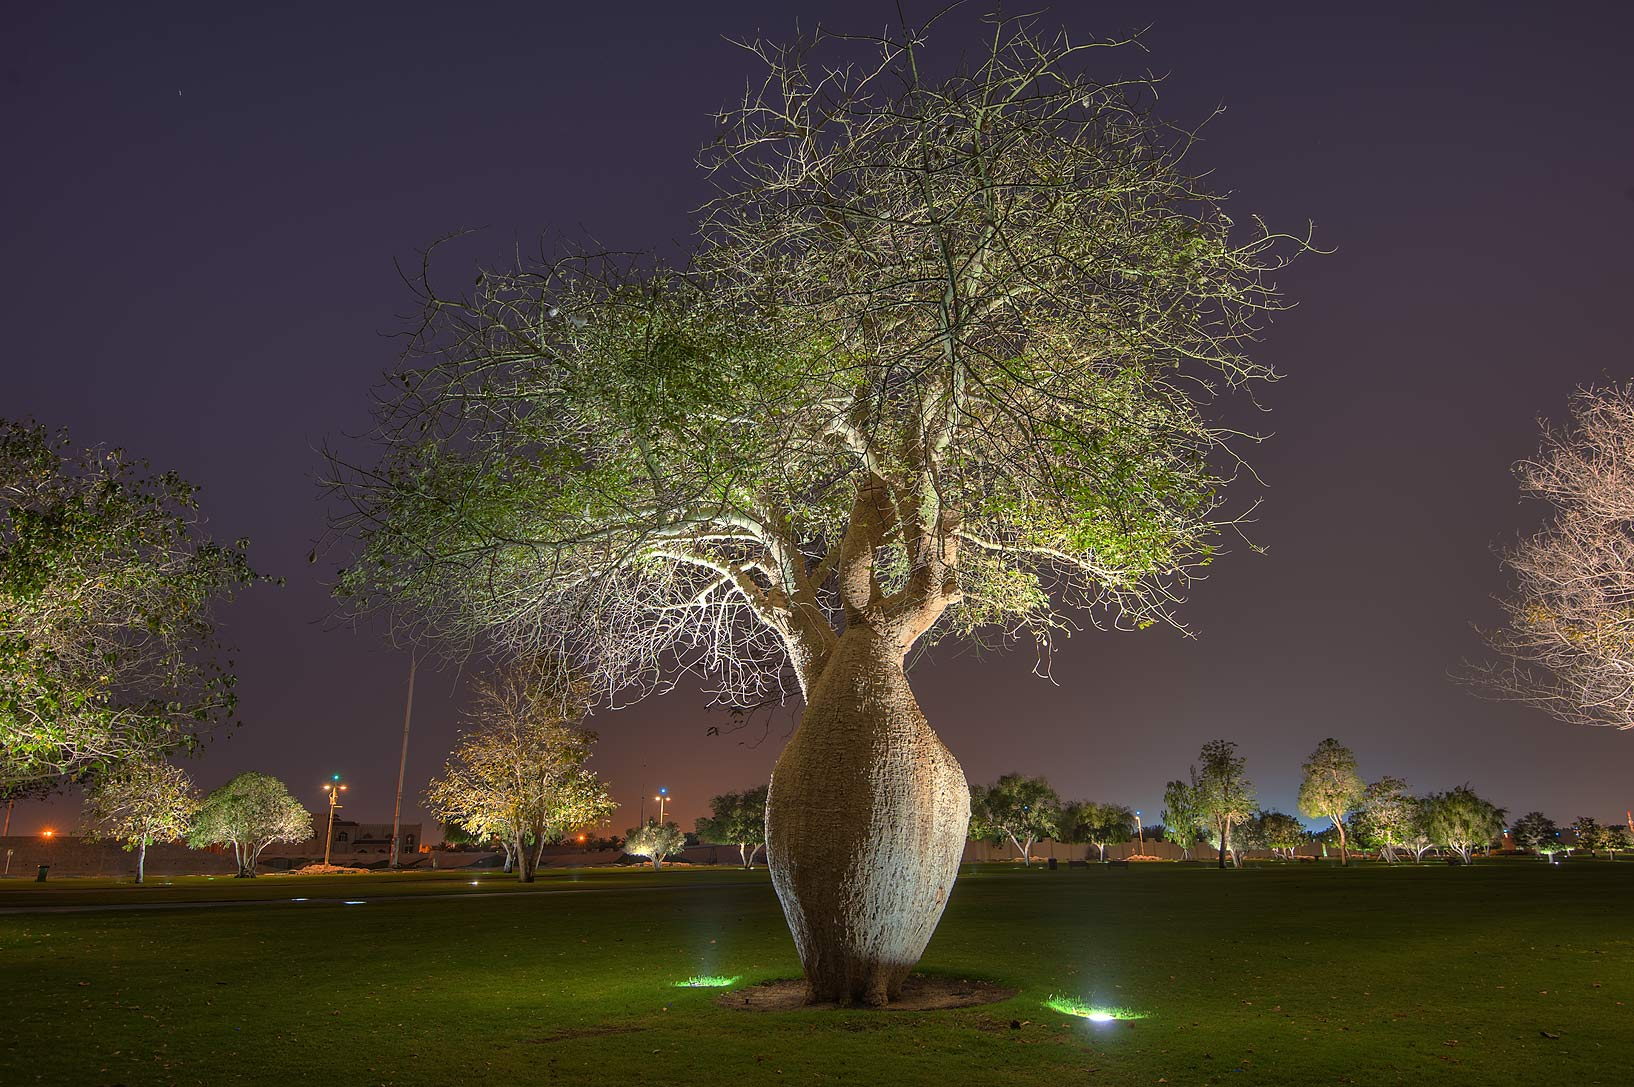 Silk floss tree (Chorisia speciosa, Ceiba...in Aspire Park at morning. Doha, Qatar